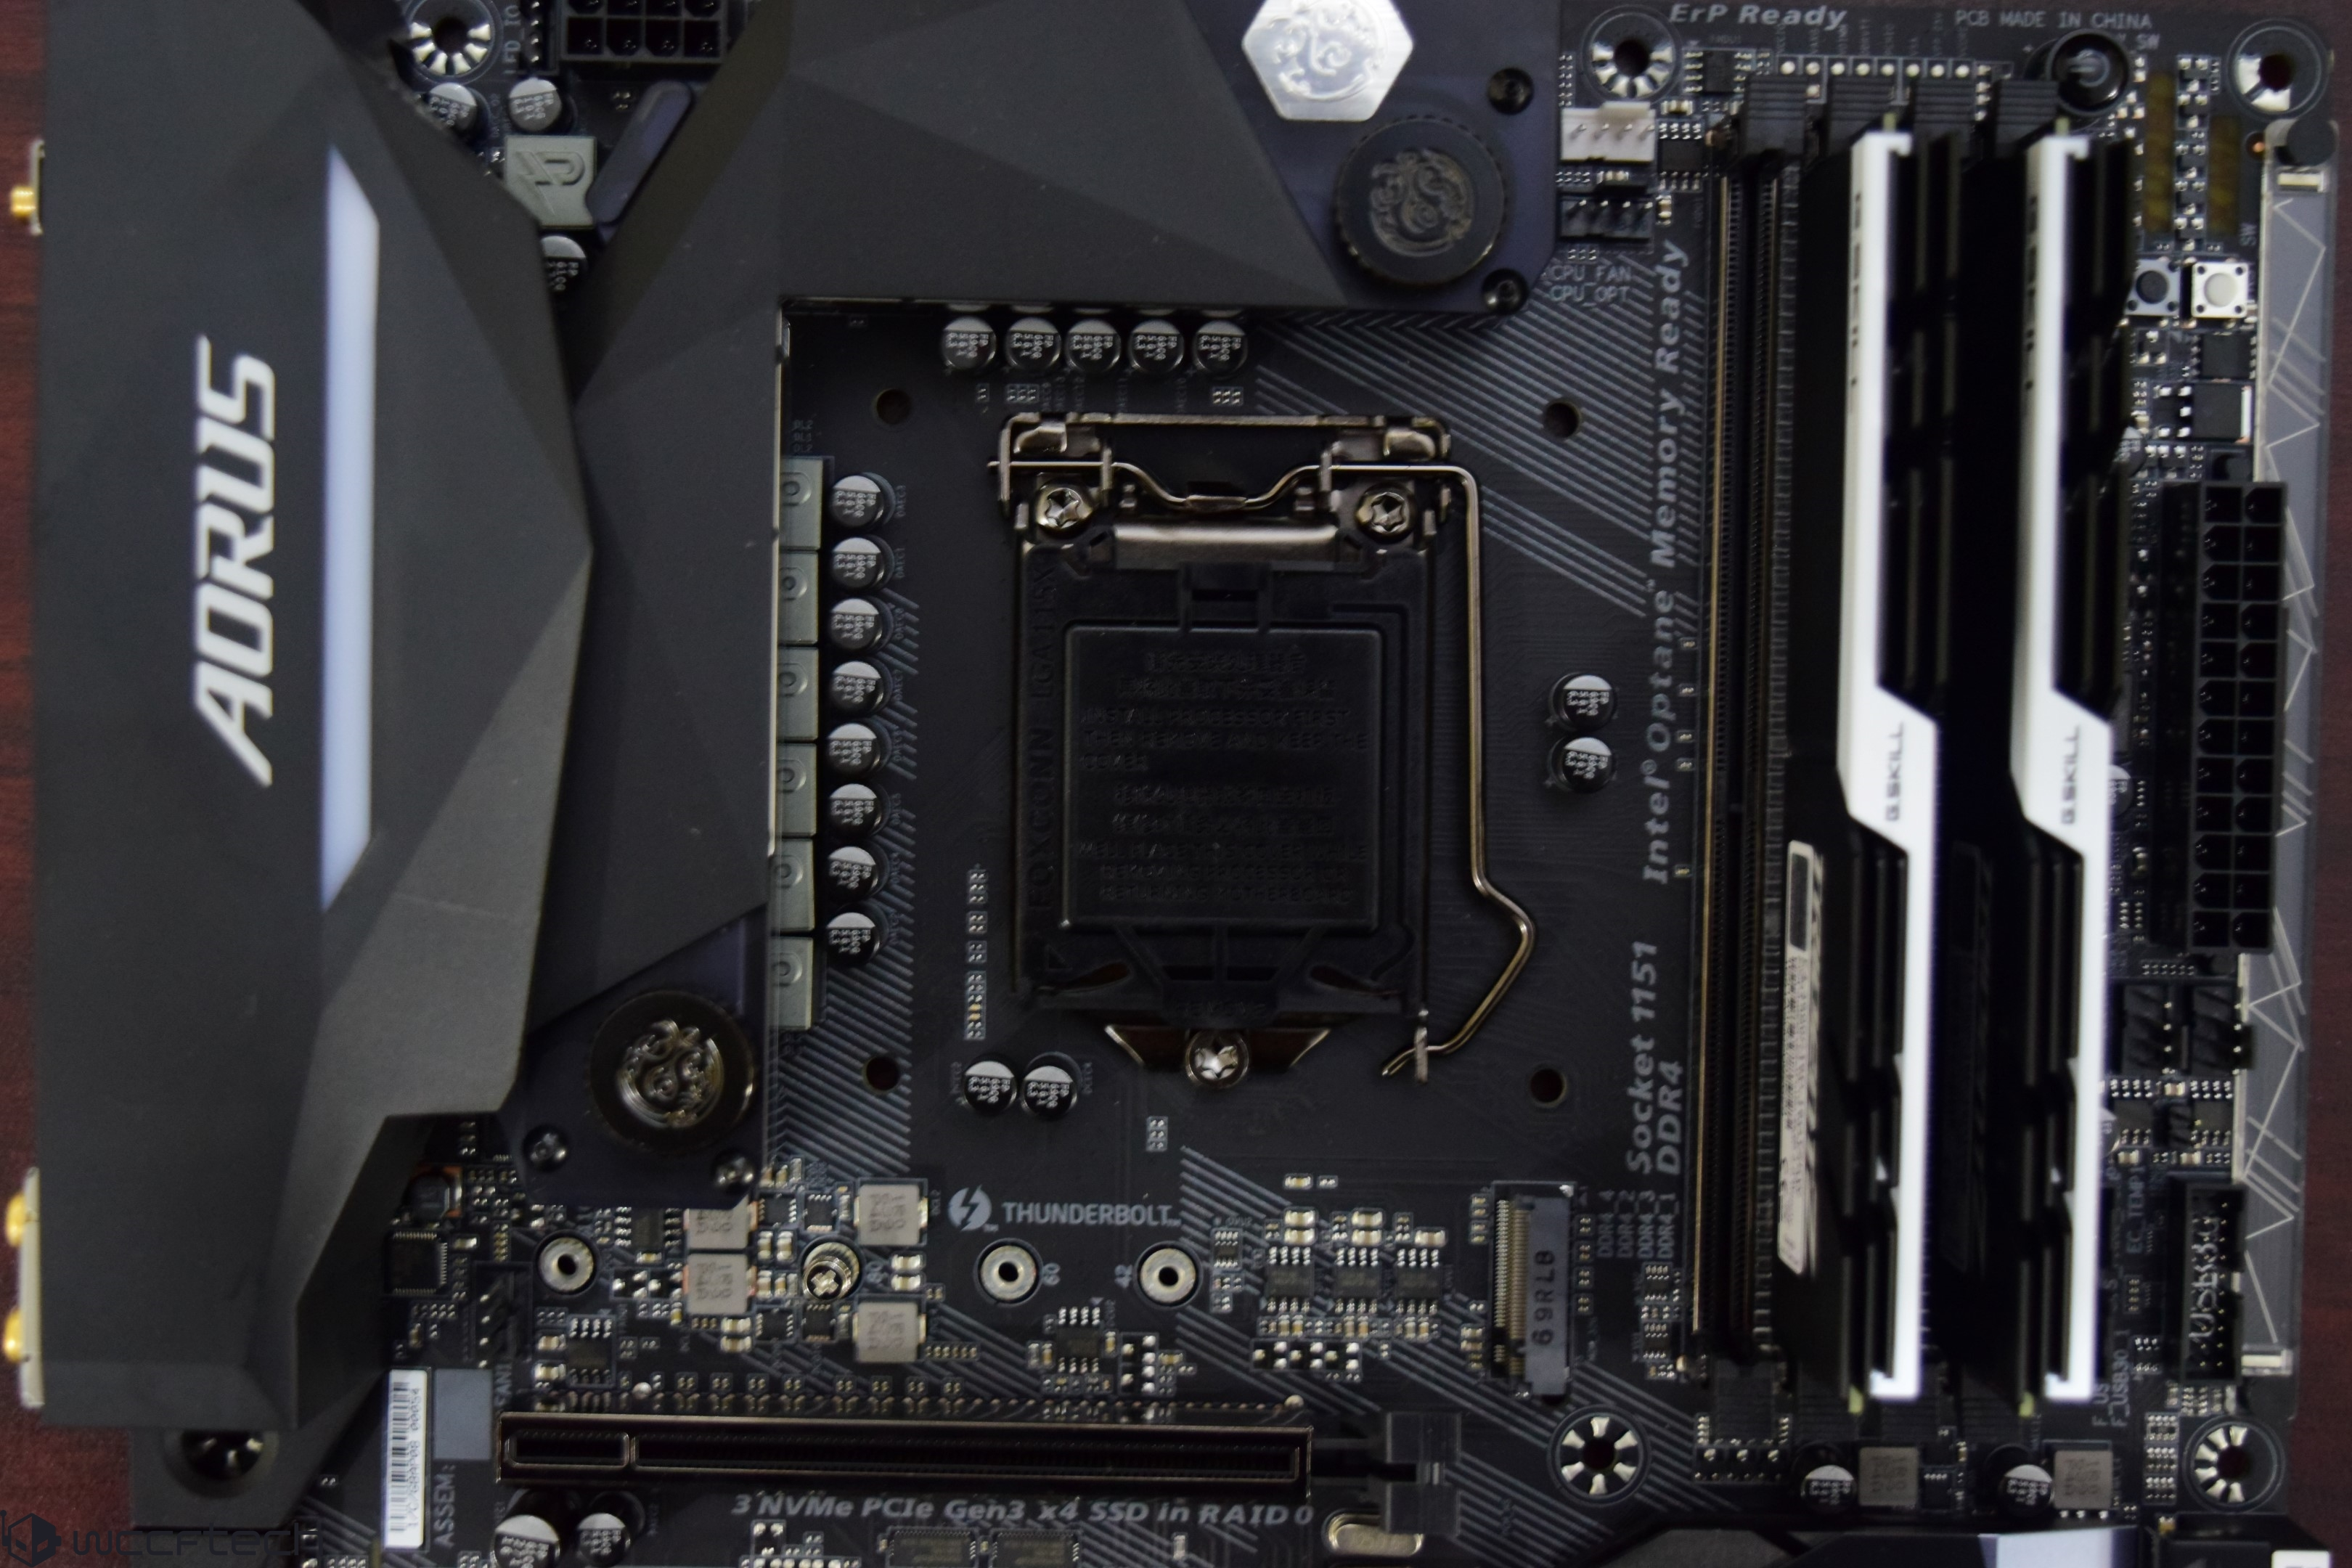 GIGABYTE AORUS Z270X-Gaming 8 LGA 1151 Motherboard With Core i7